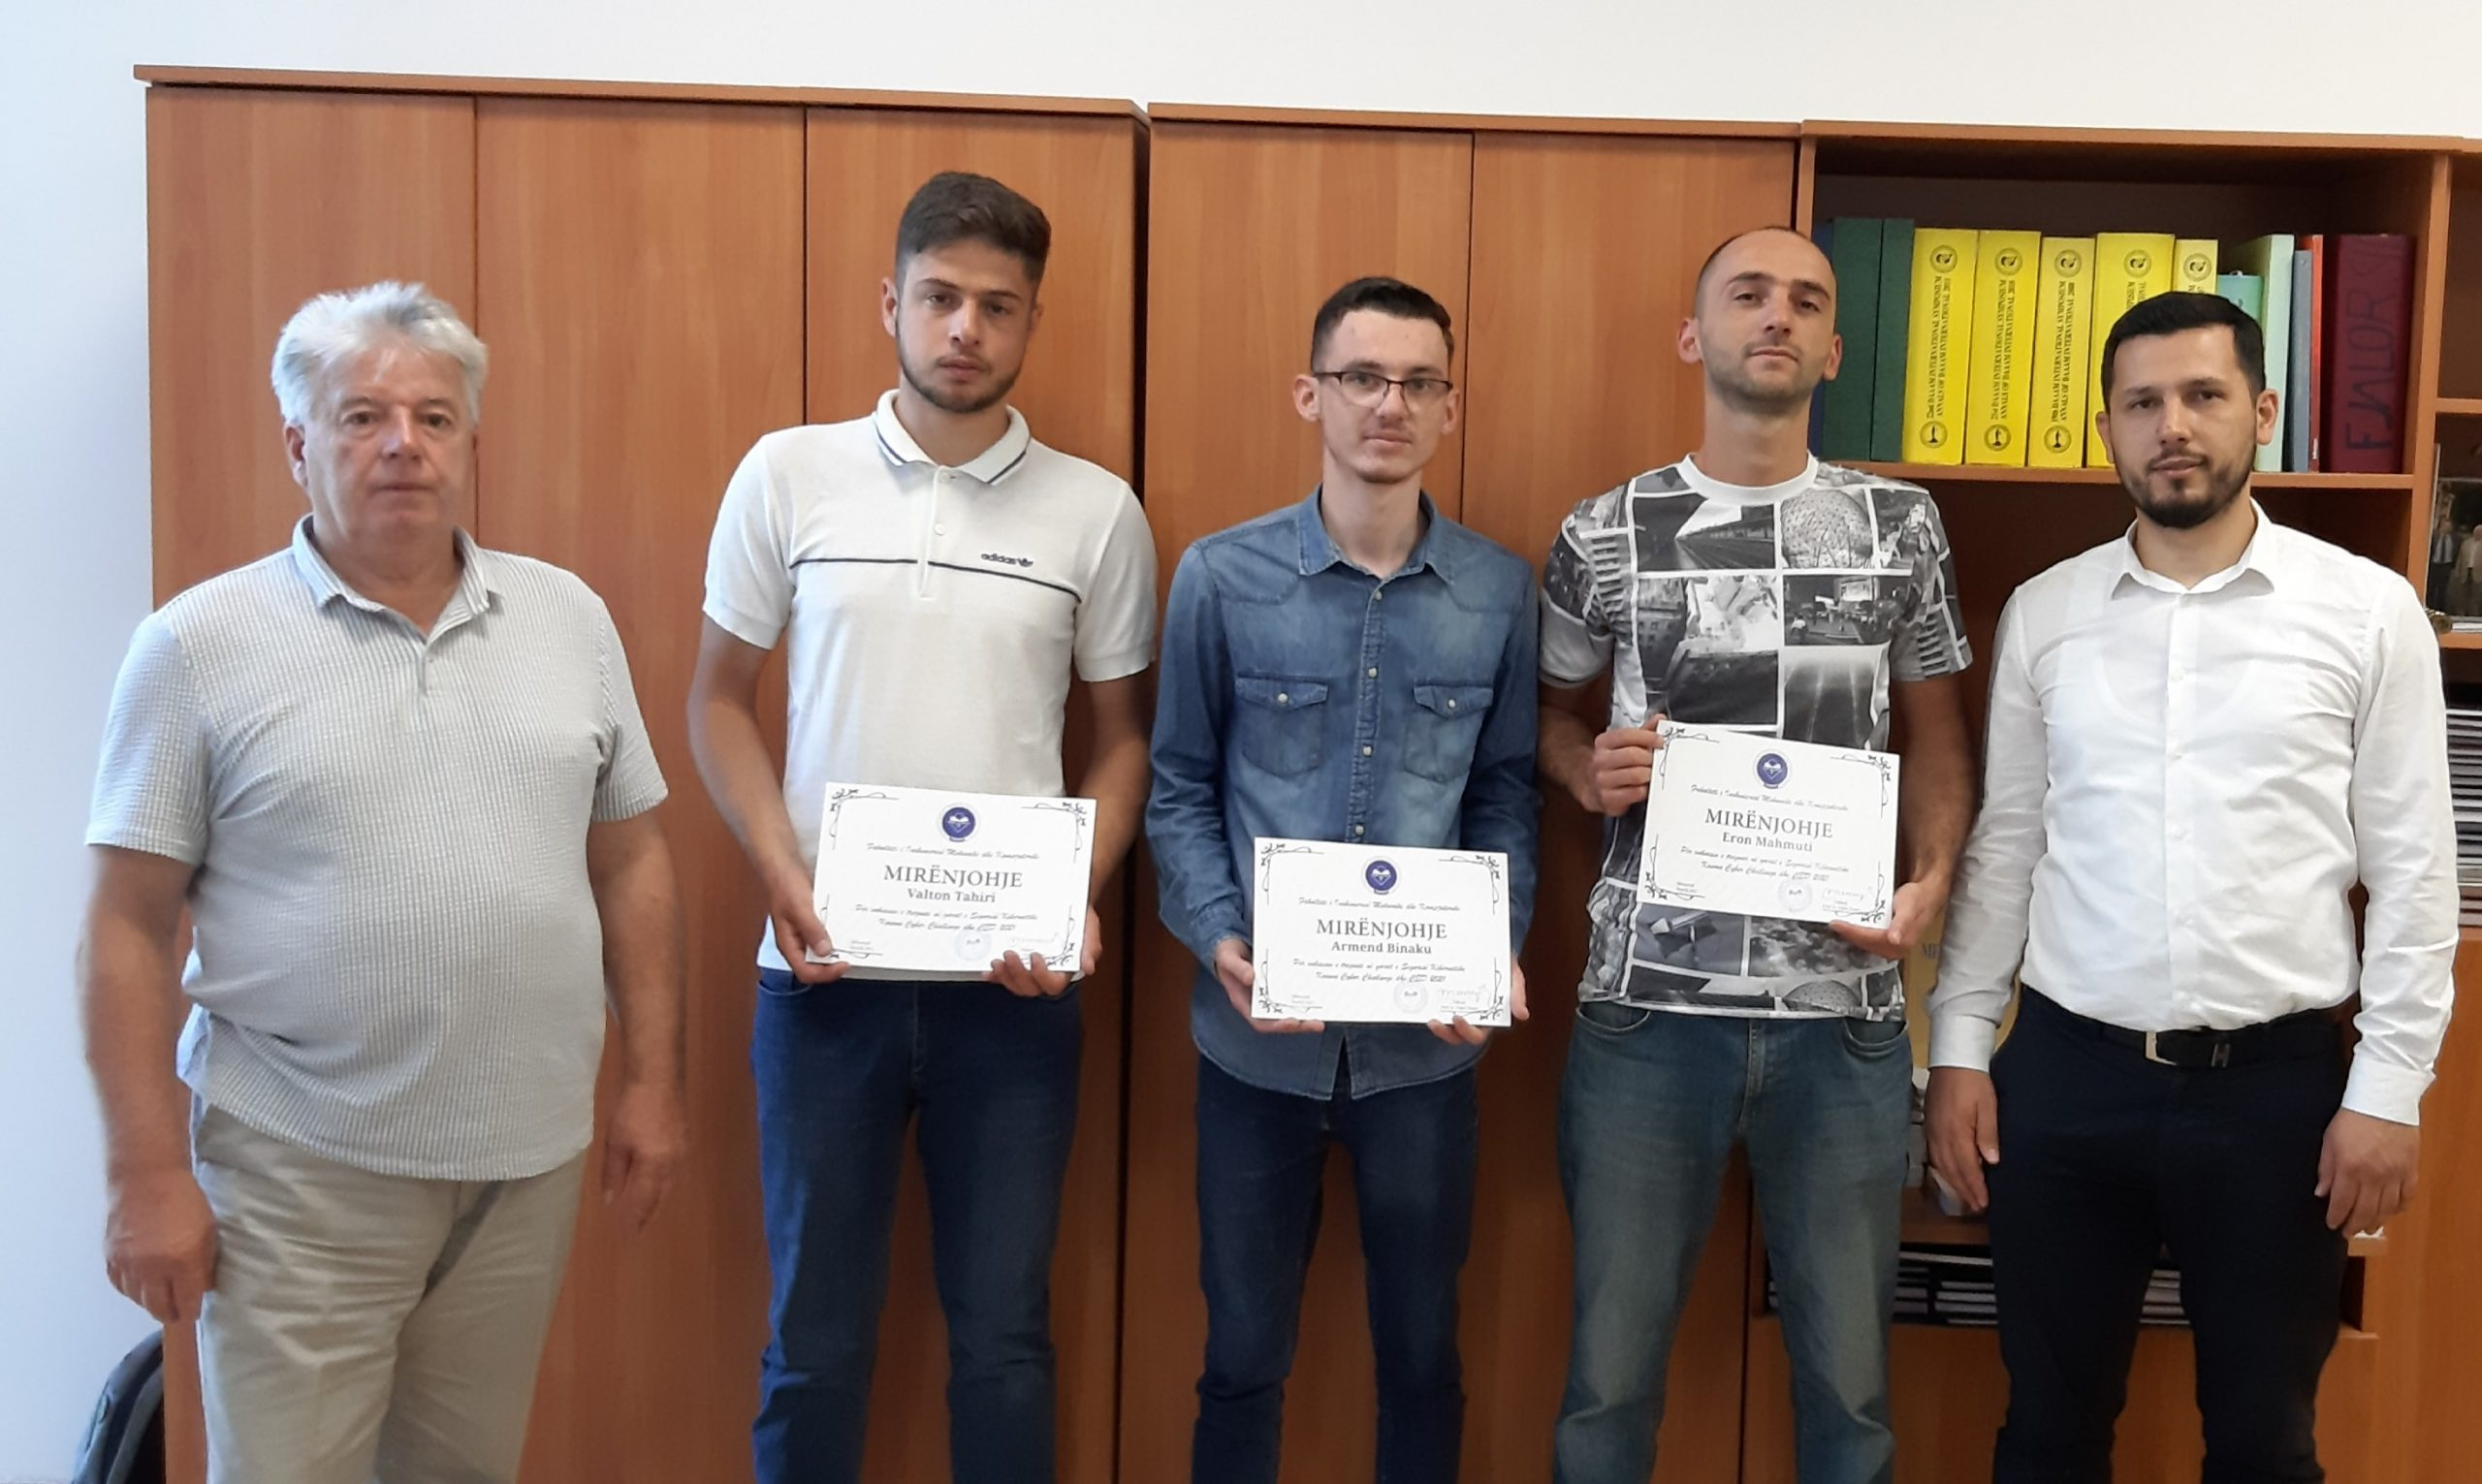 Acknowledgments to the students who won first place in the cyber security competition